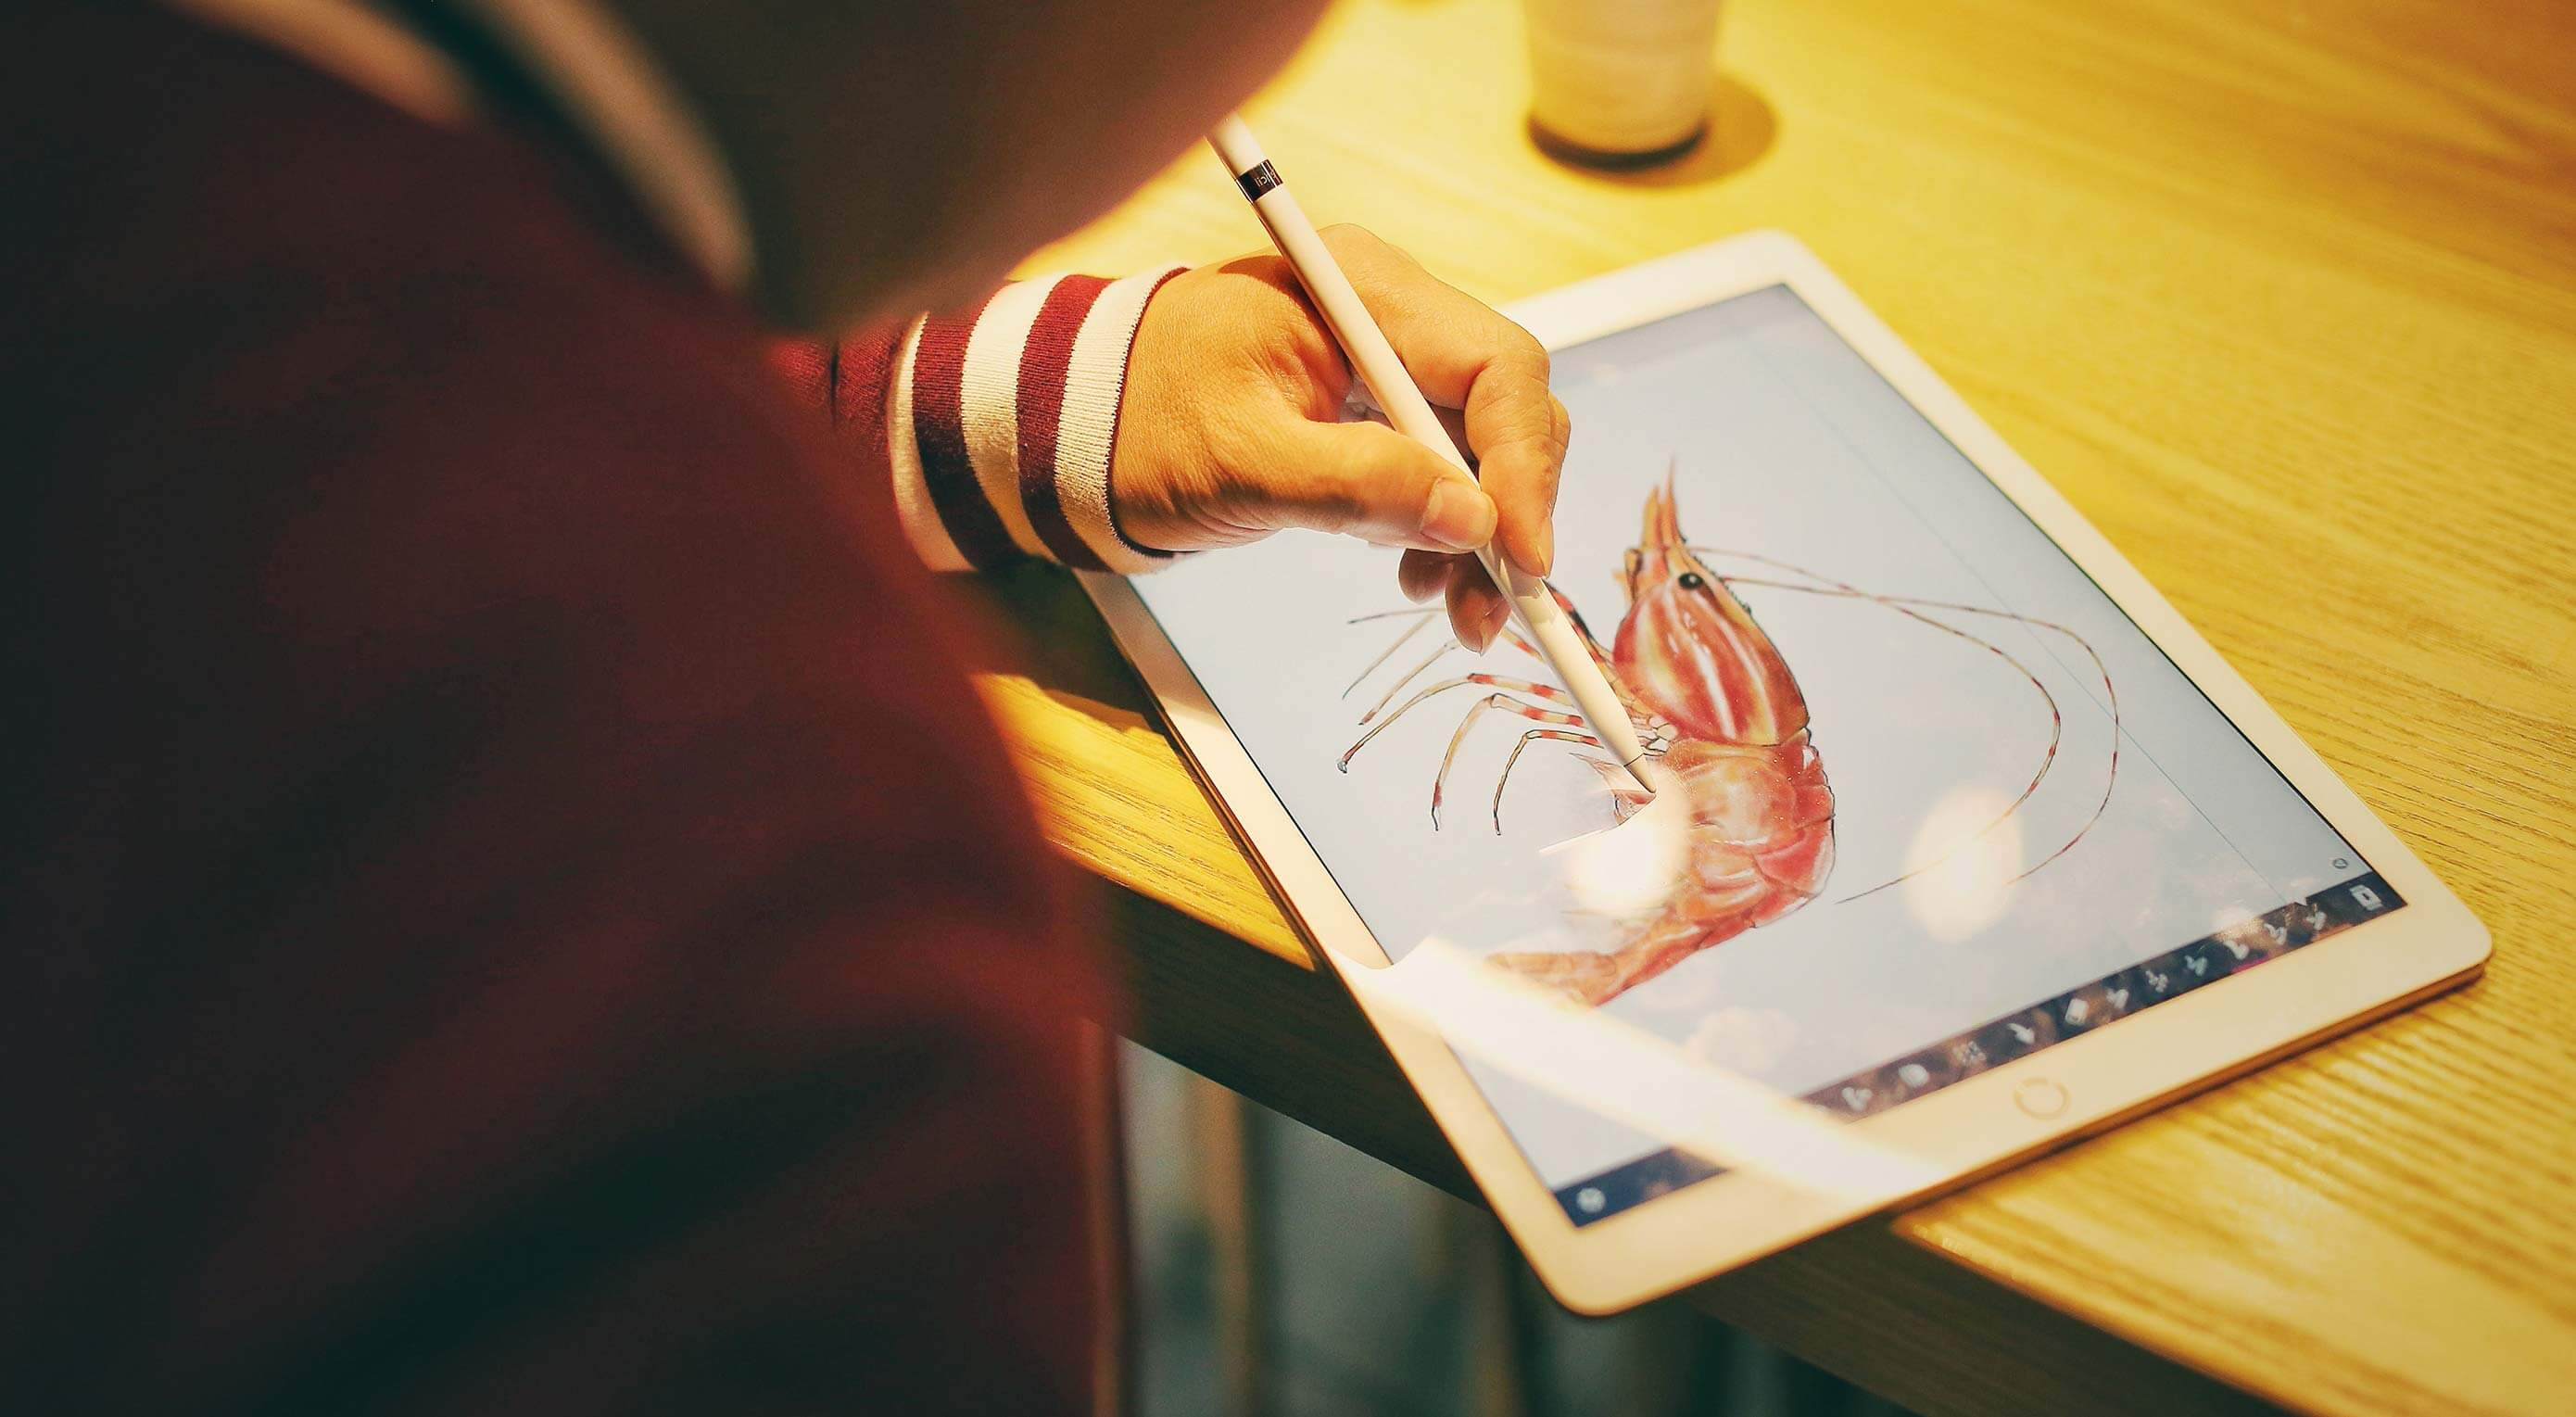 Top 10 Drawing Apps for iOS and Android